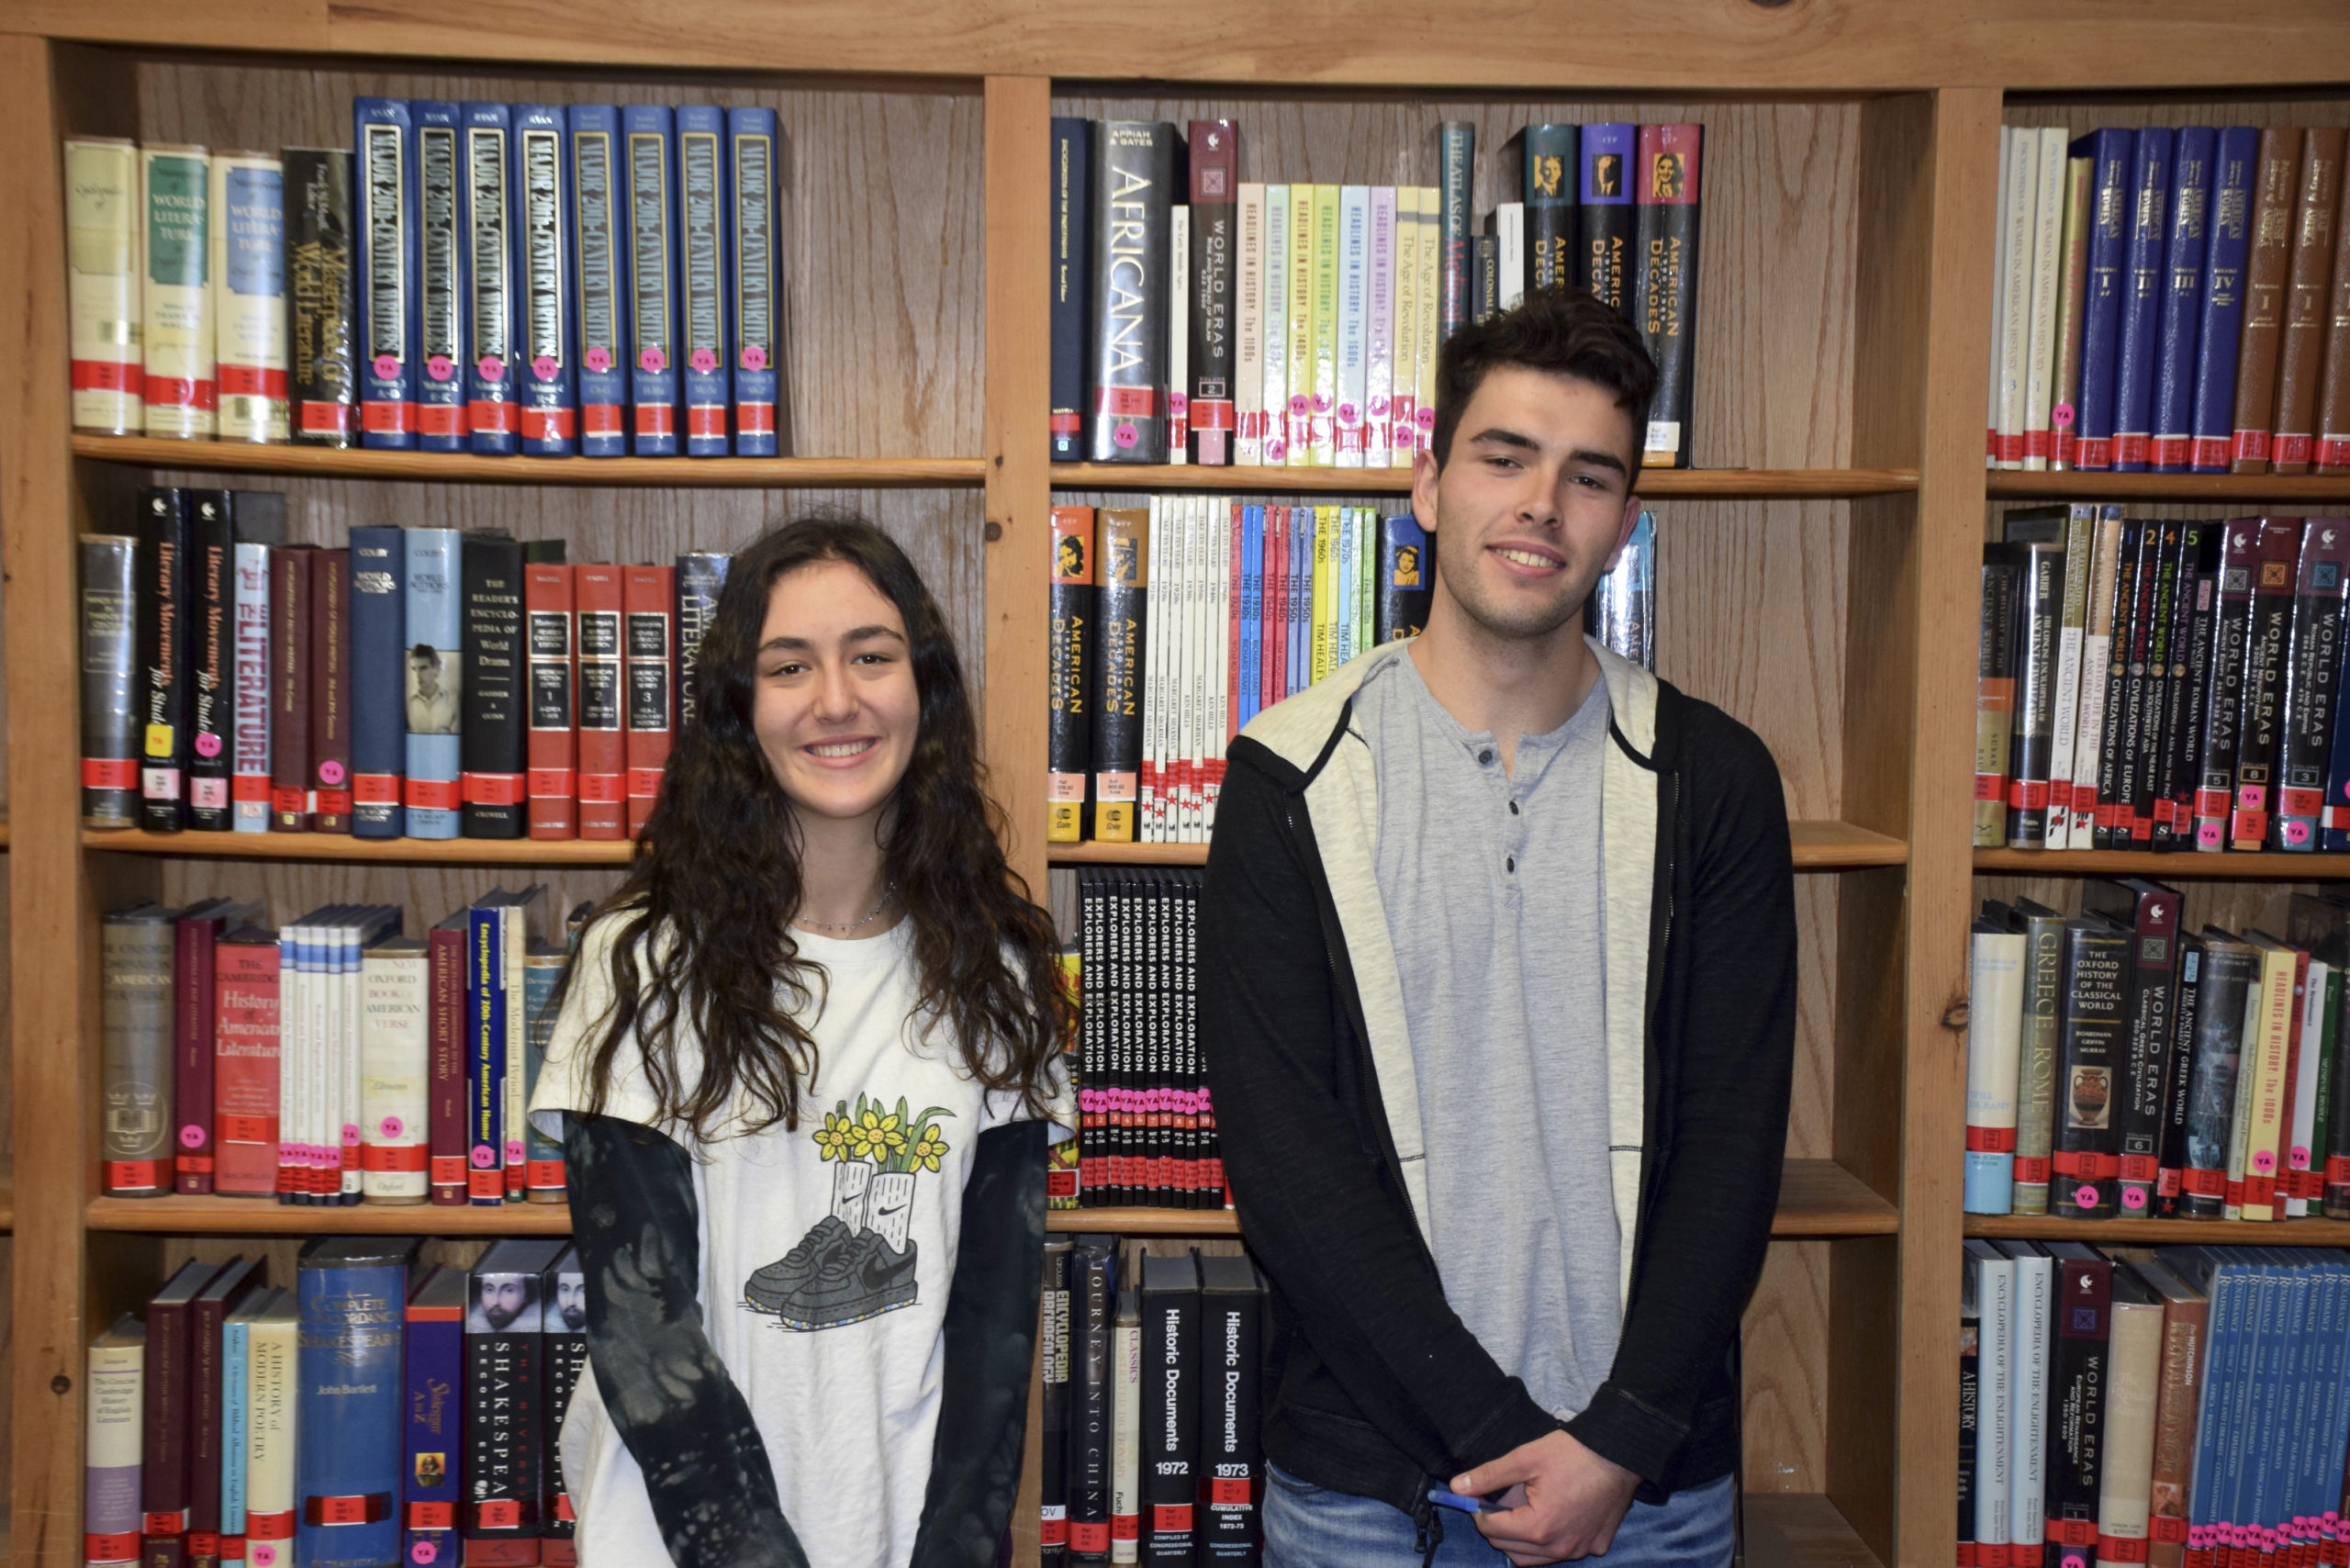 Pierson High School valedictorian Ruby Yassen and salutatorian Chase Allardice have been accepted to their top picks of colleges. Ruby will attend University of California, Los Angeles, and Chase will study at the prestigious Berklee College of Music in Boston.    COURTESY SAG HARBOR SCHOOL DISTRICT